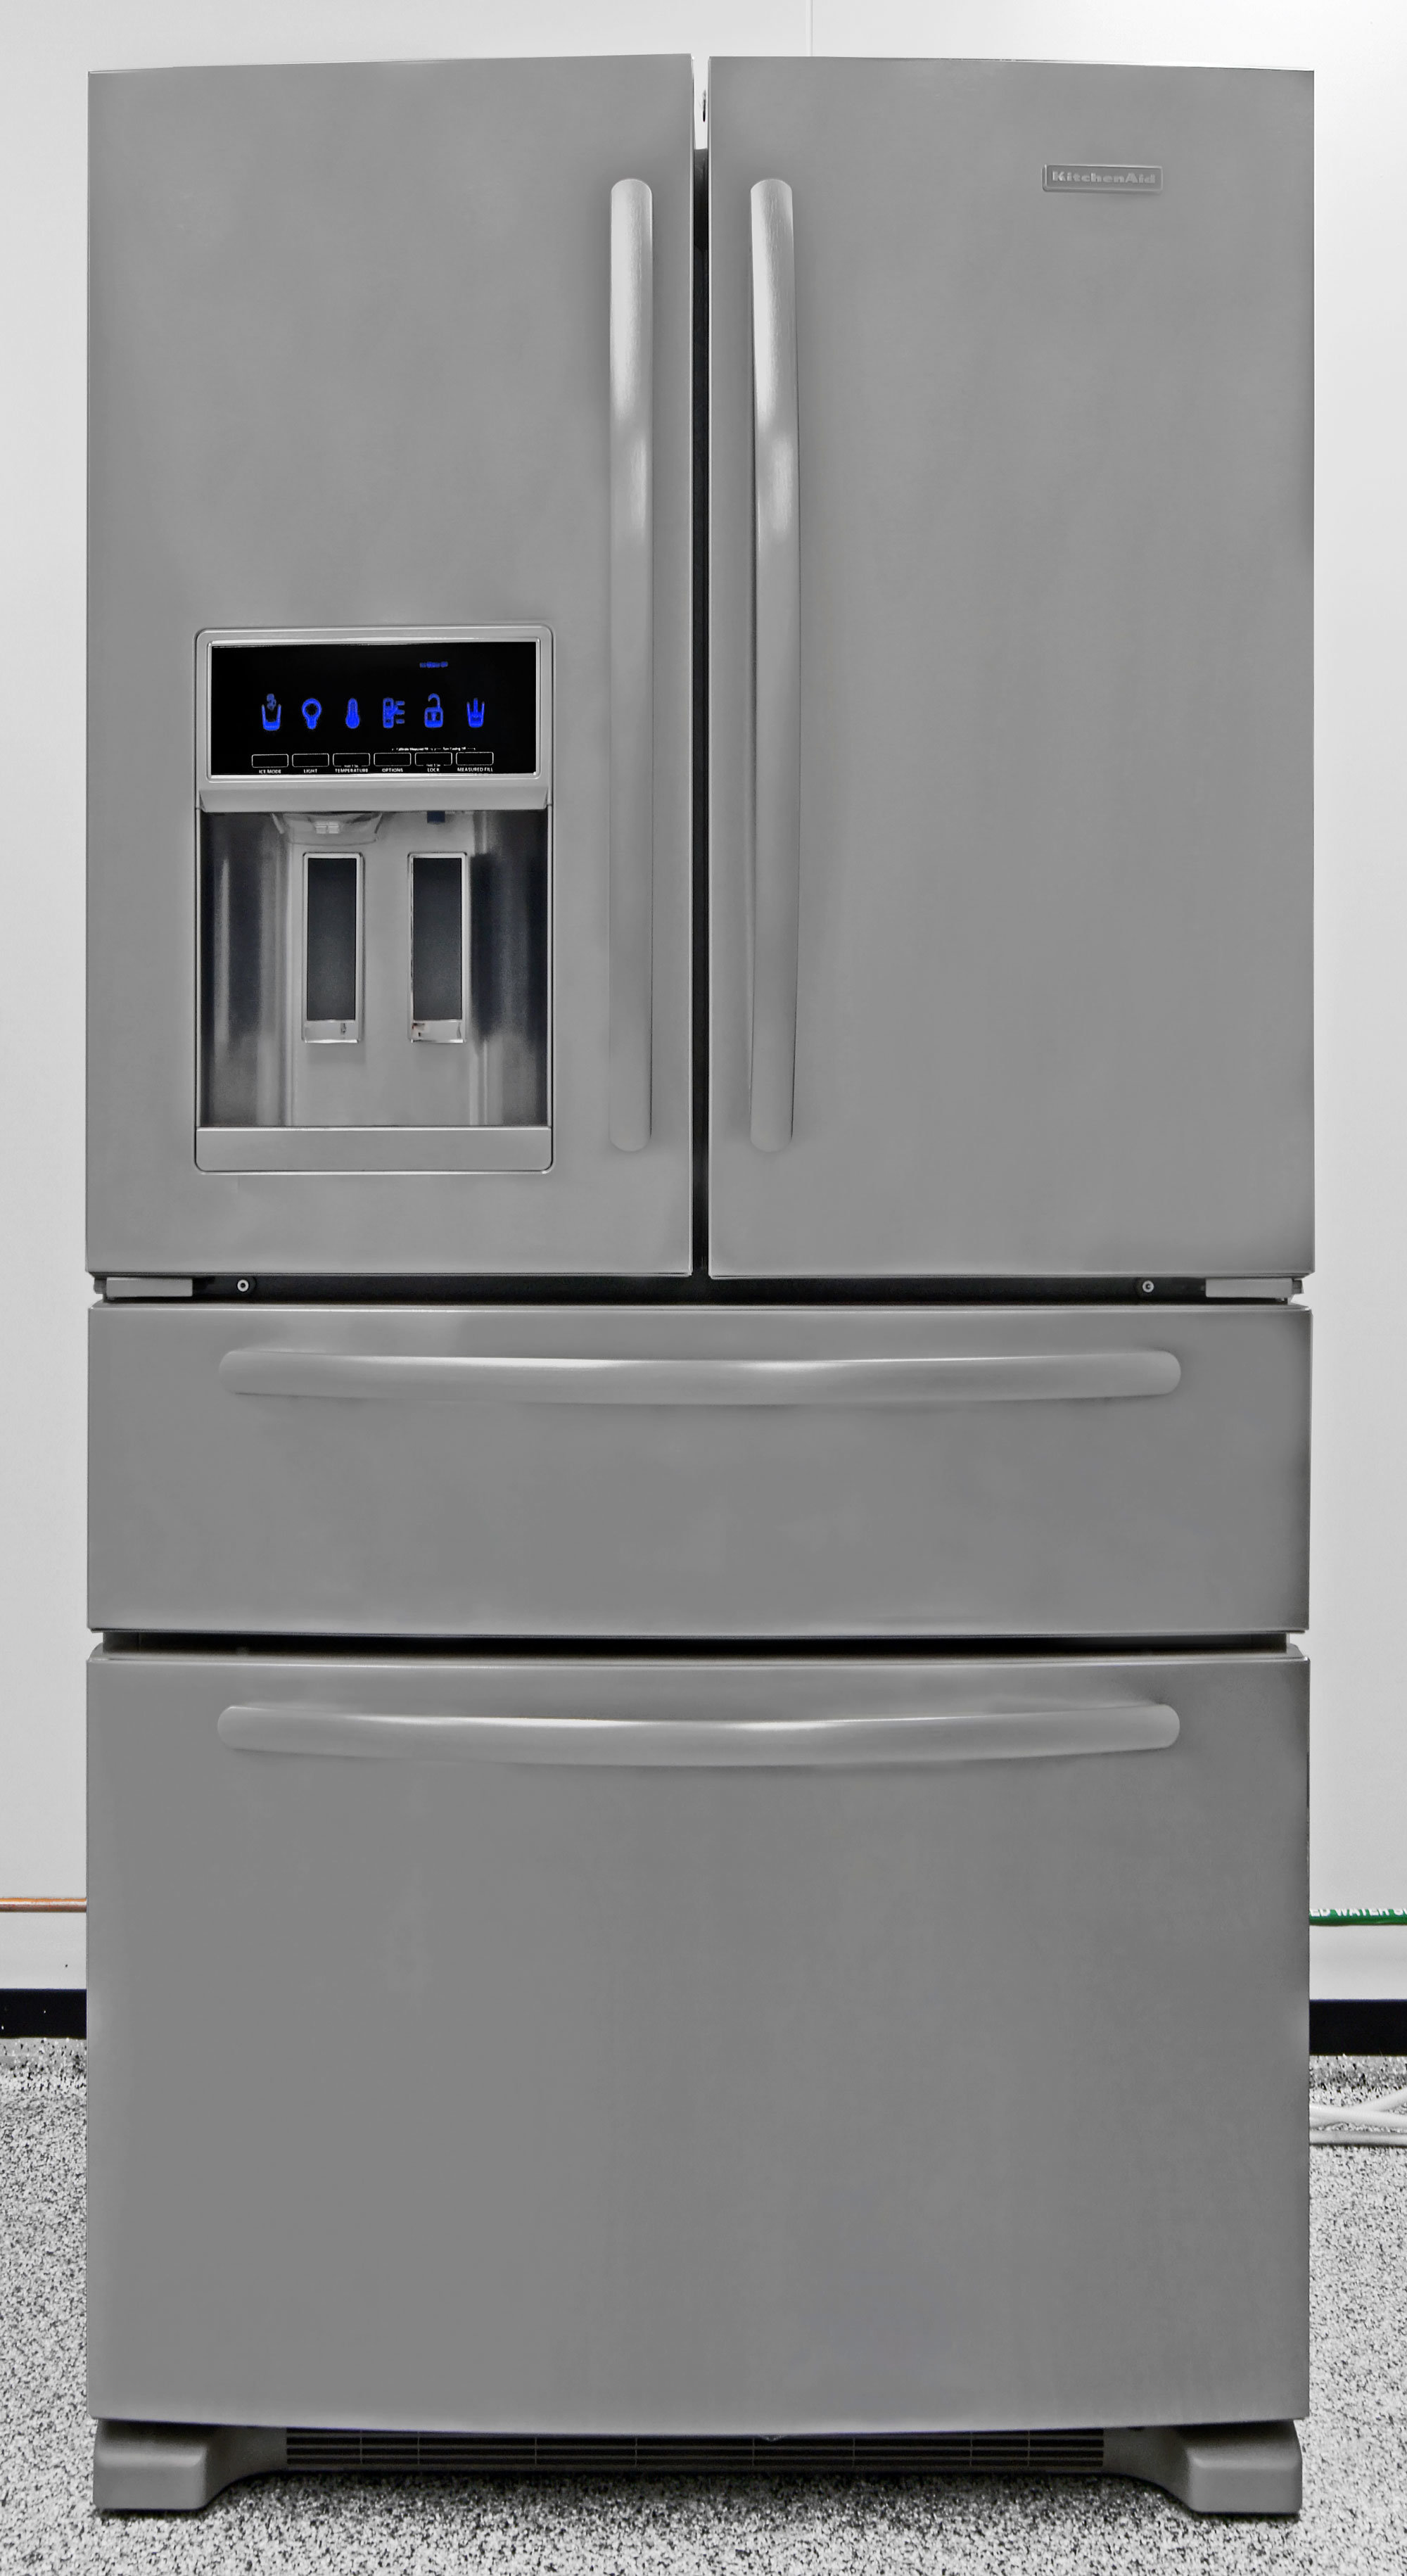 The KitchenAid KFXS25RYMS is one of the more affordable four-door fridges on the market today.